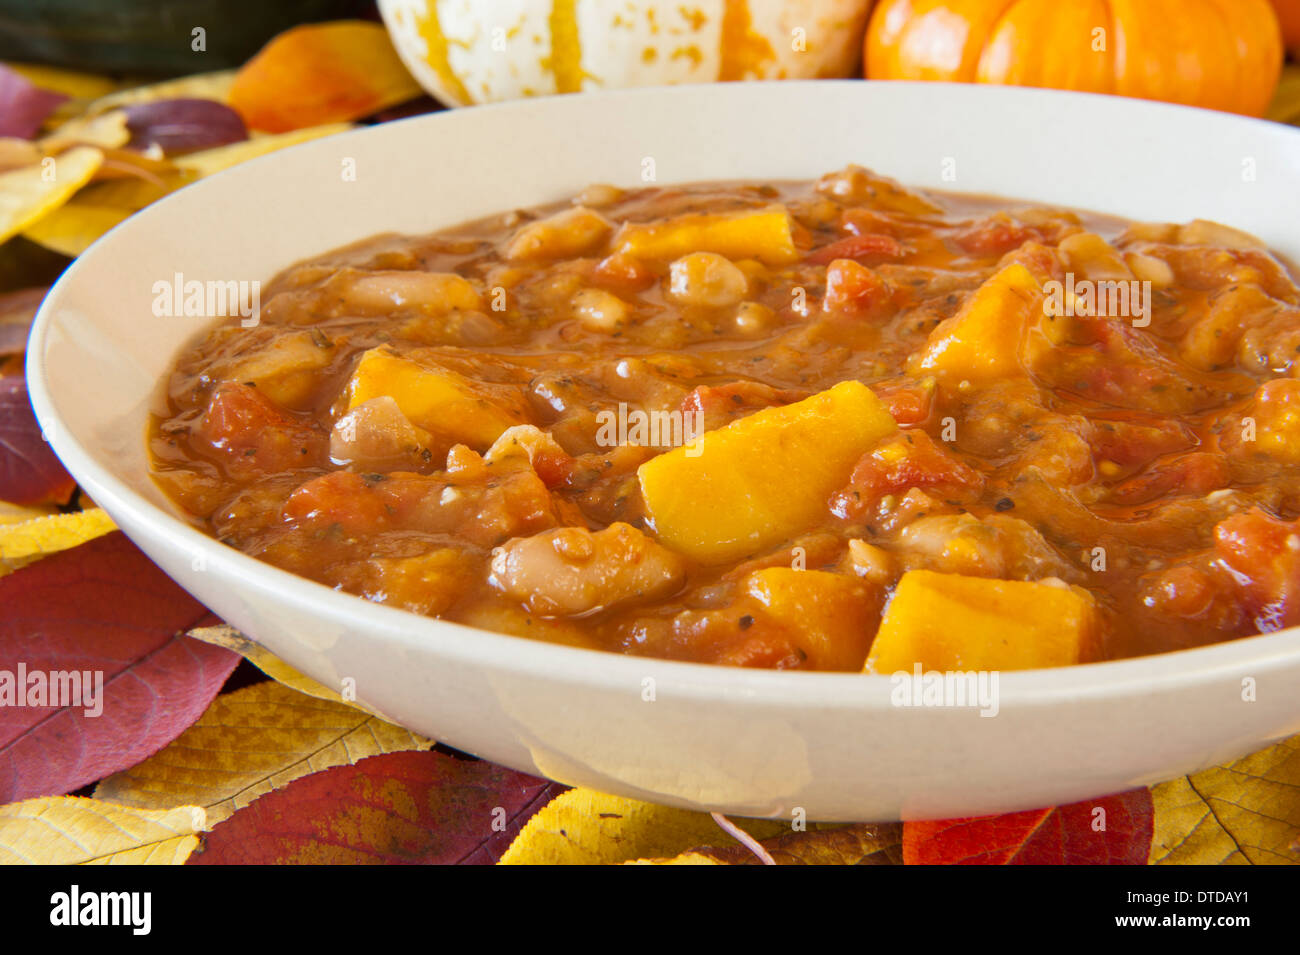 Hearty pumpkin stew with tomatoes, beans and vegetables - Stock Image